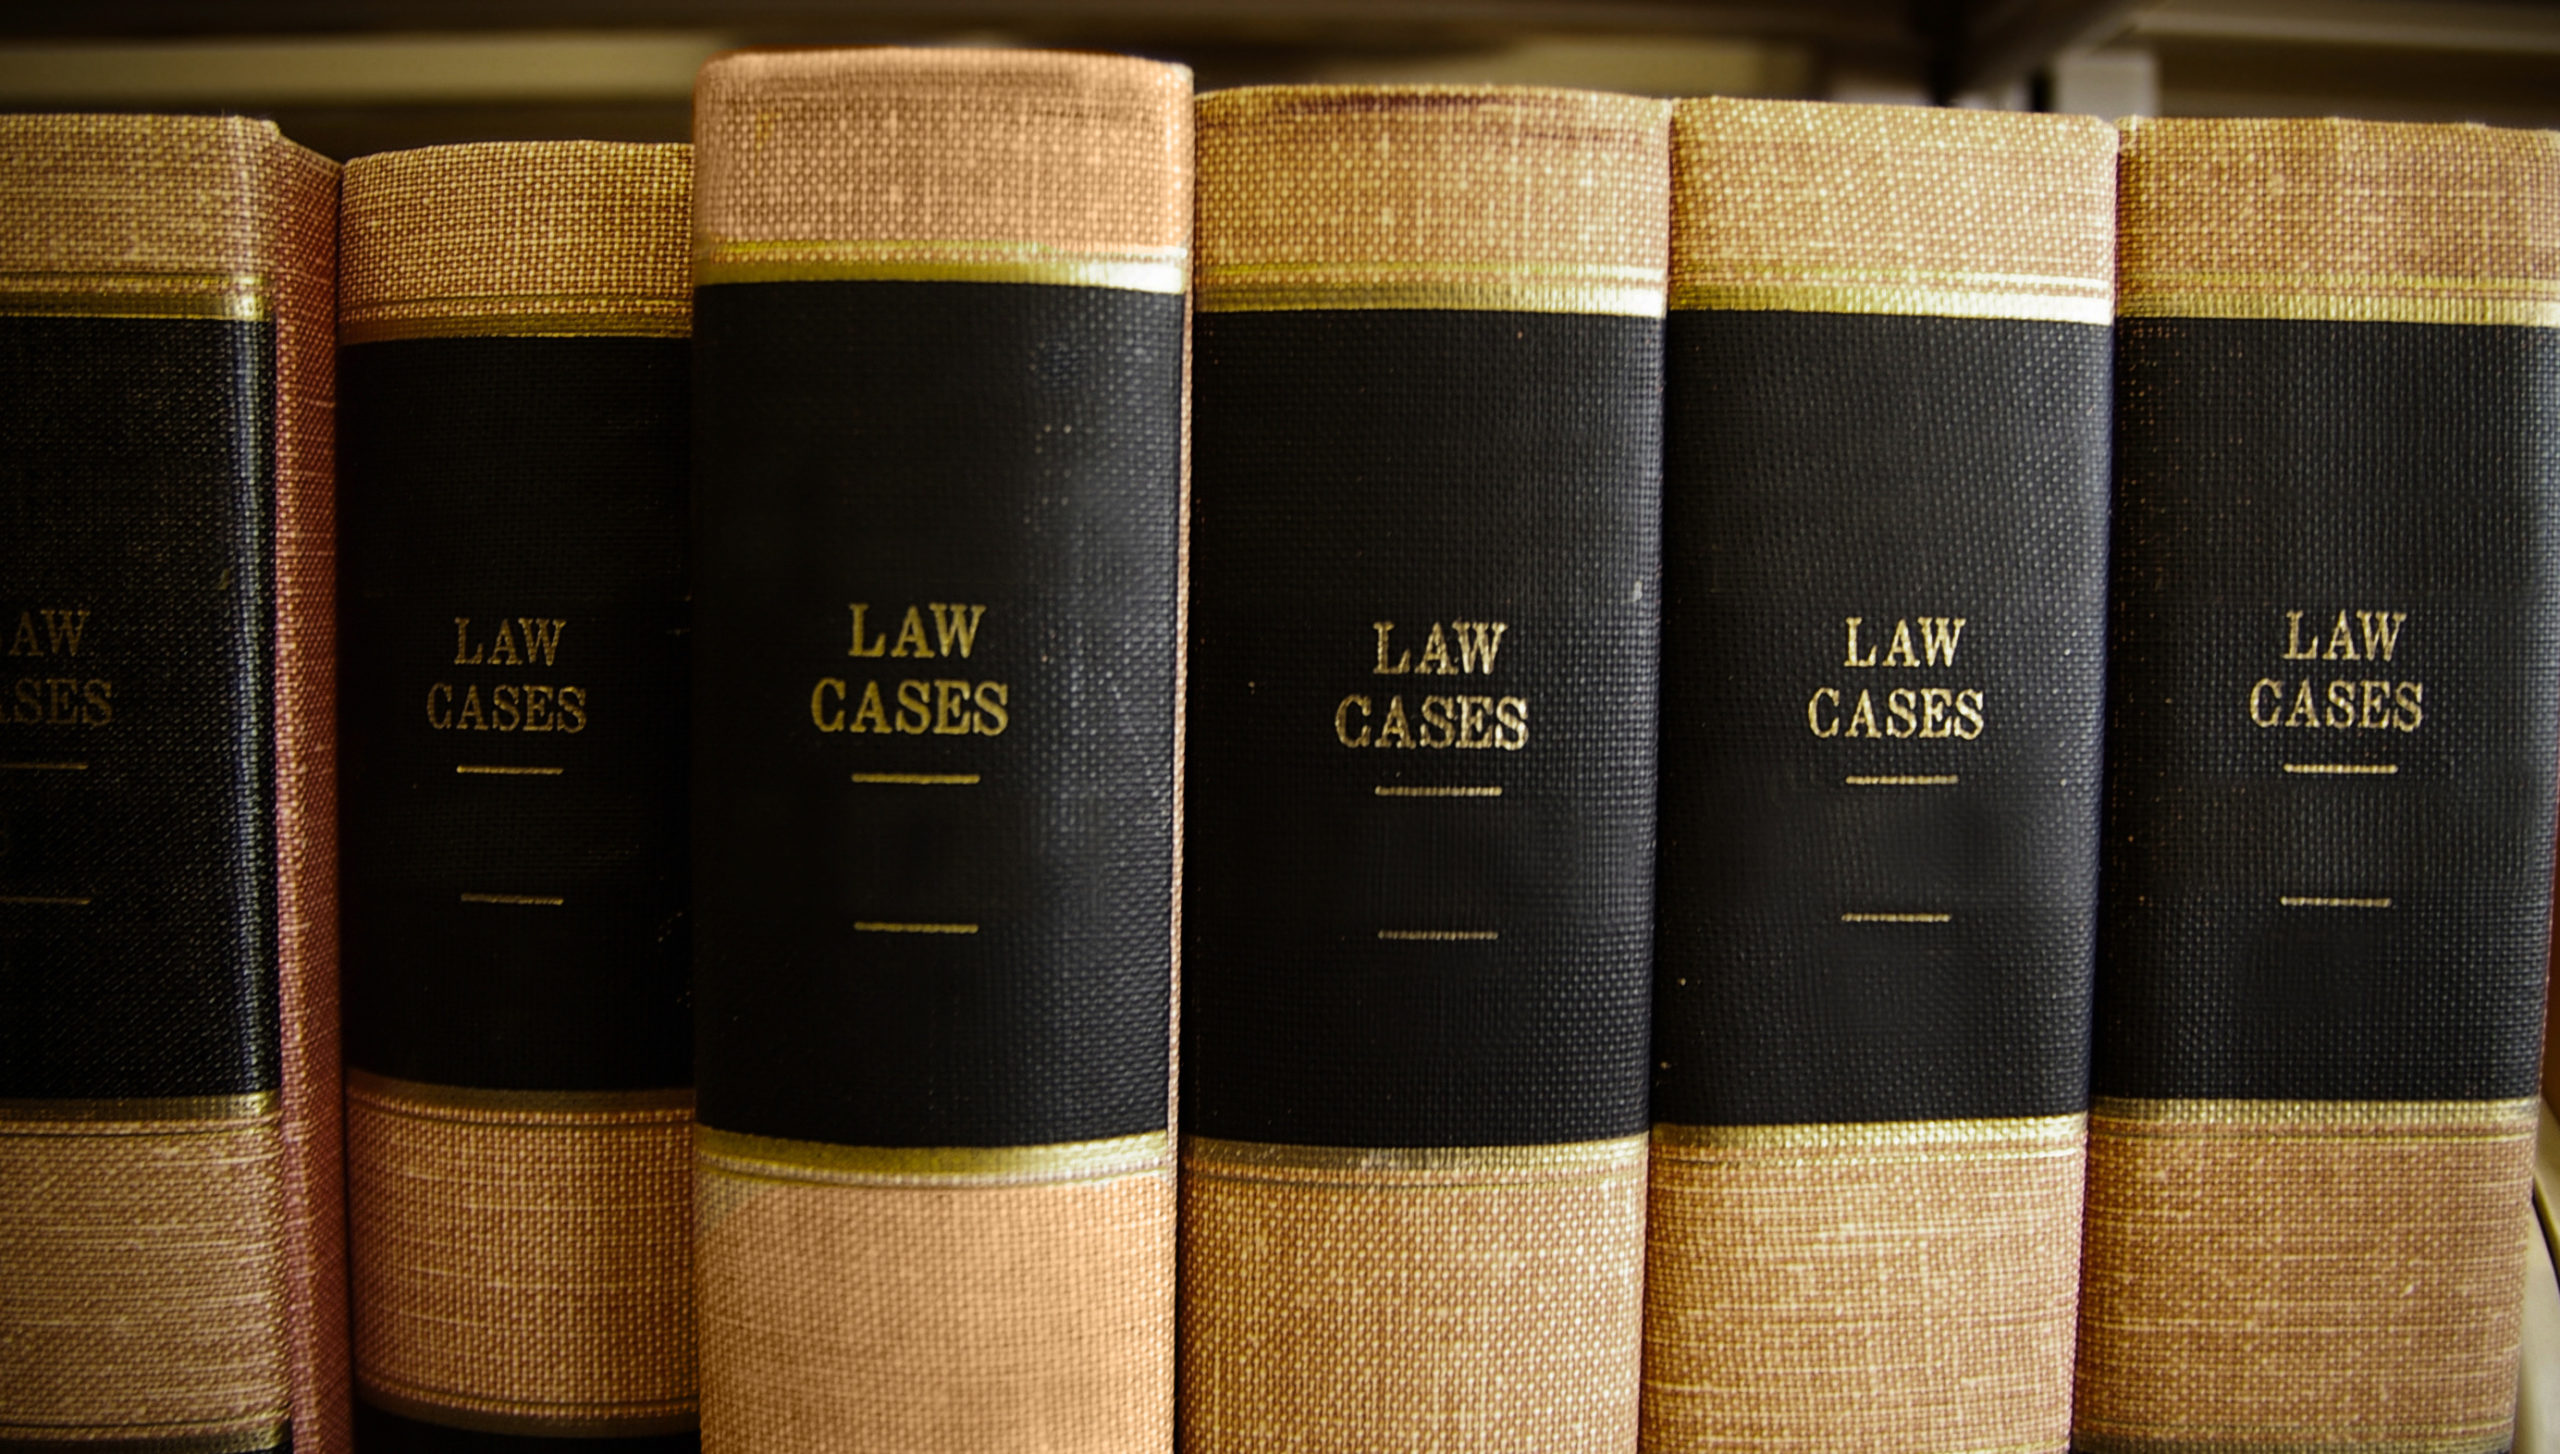 Blog - Law books in a row